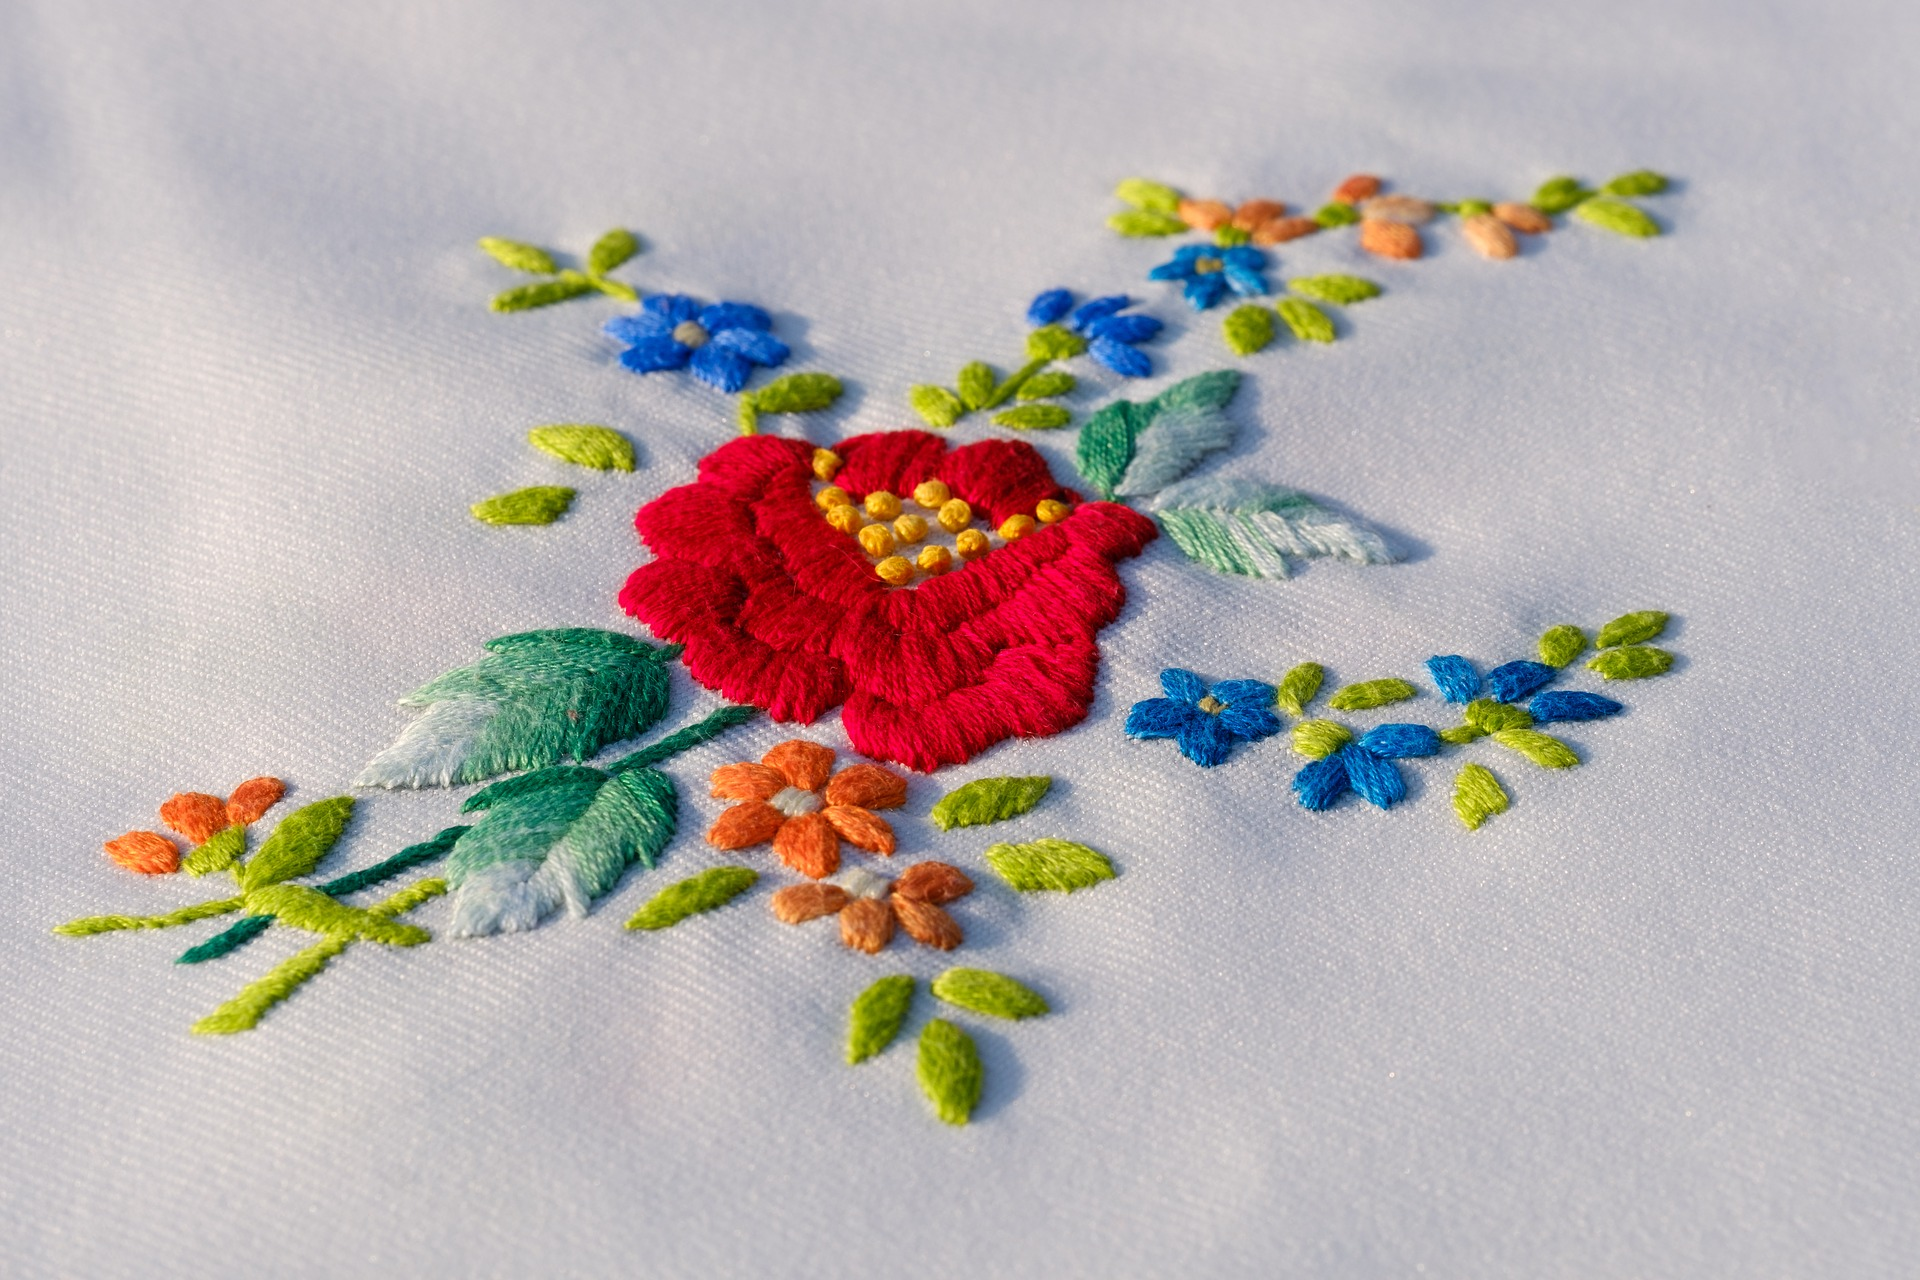 https://pixabay.com/photos/embroidery-embroidered-craft-3524900/